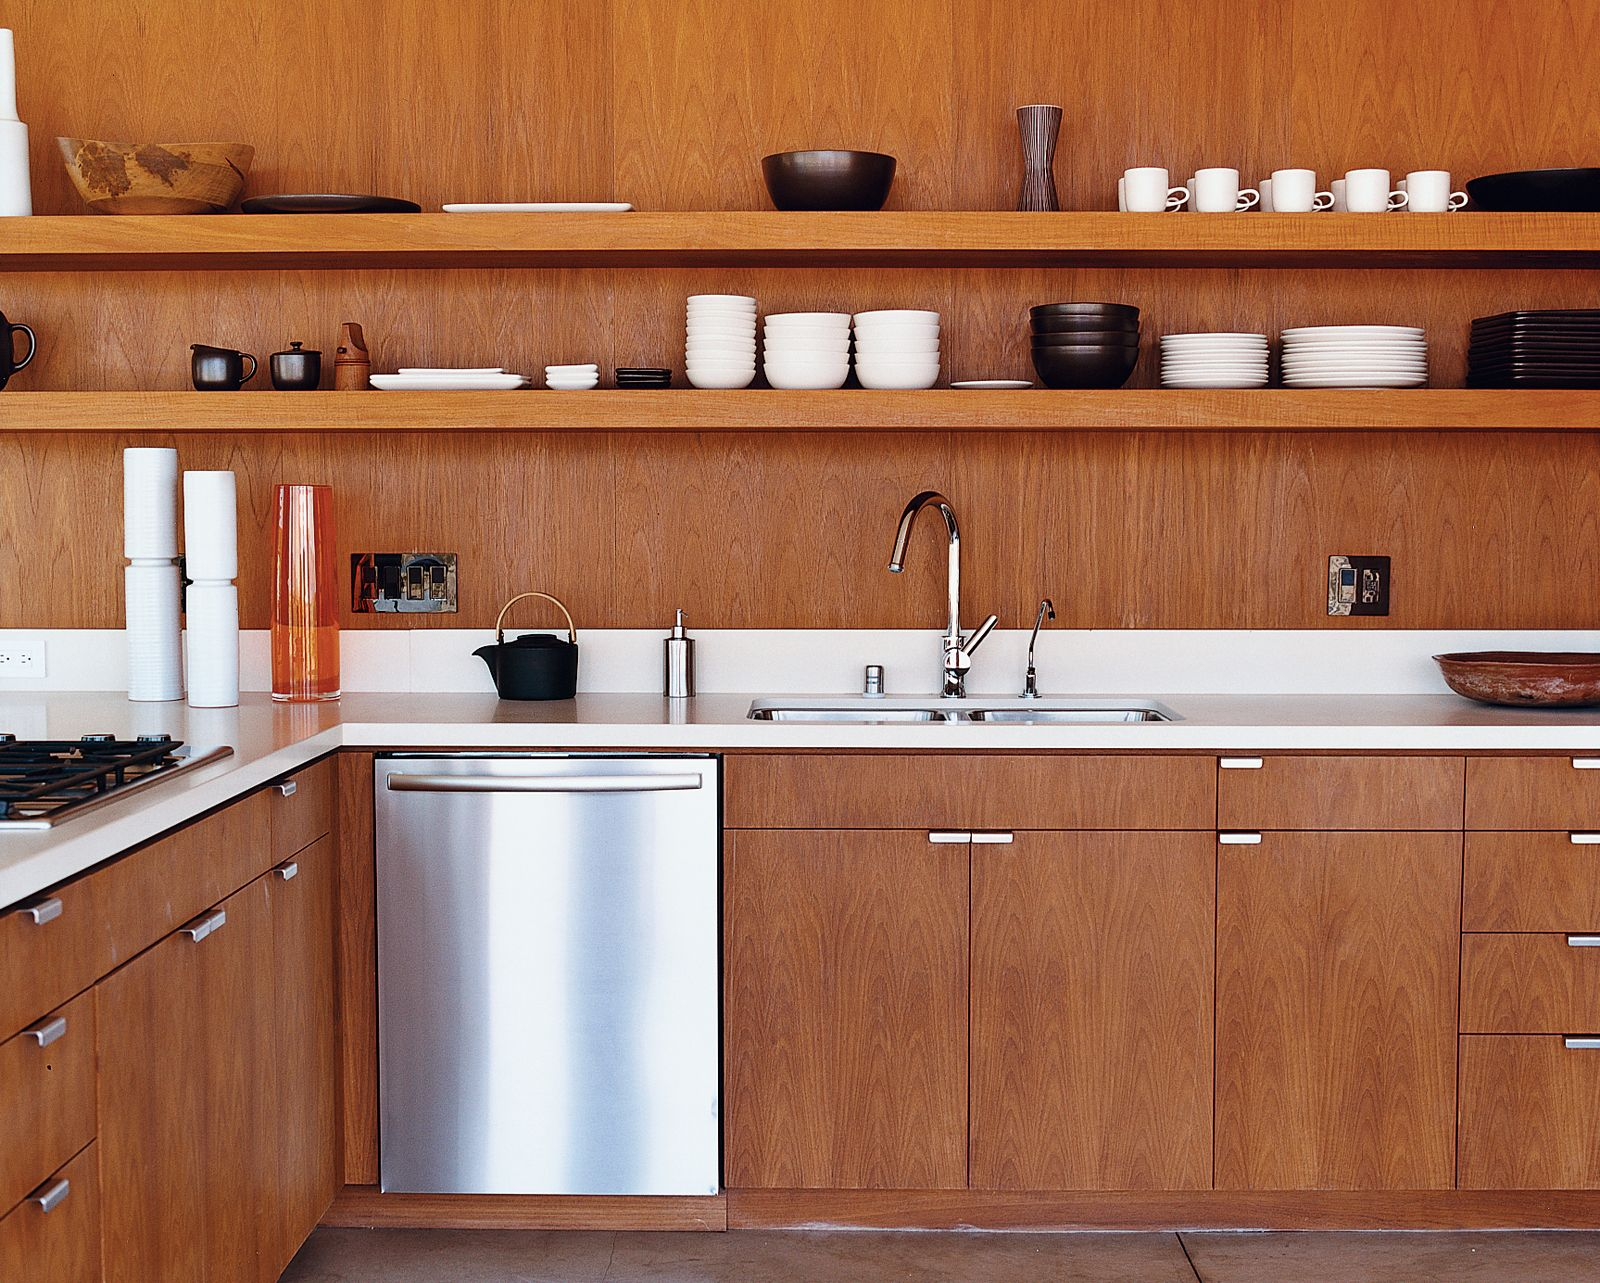 The Kitchen Cabinetry In The Desert House Custom Designed By The Marmol Radziner And Associates Is Smooth Kitchen Decor Kitchen Interior Kitchen Inspirations